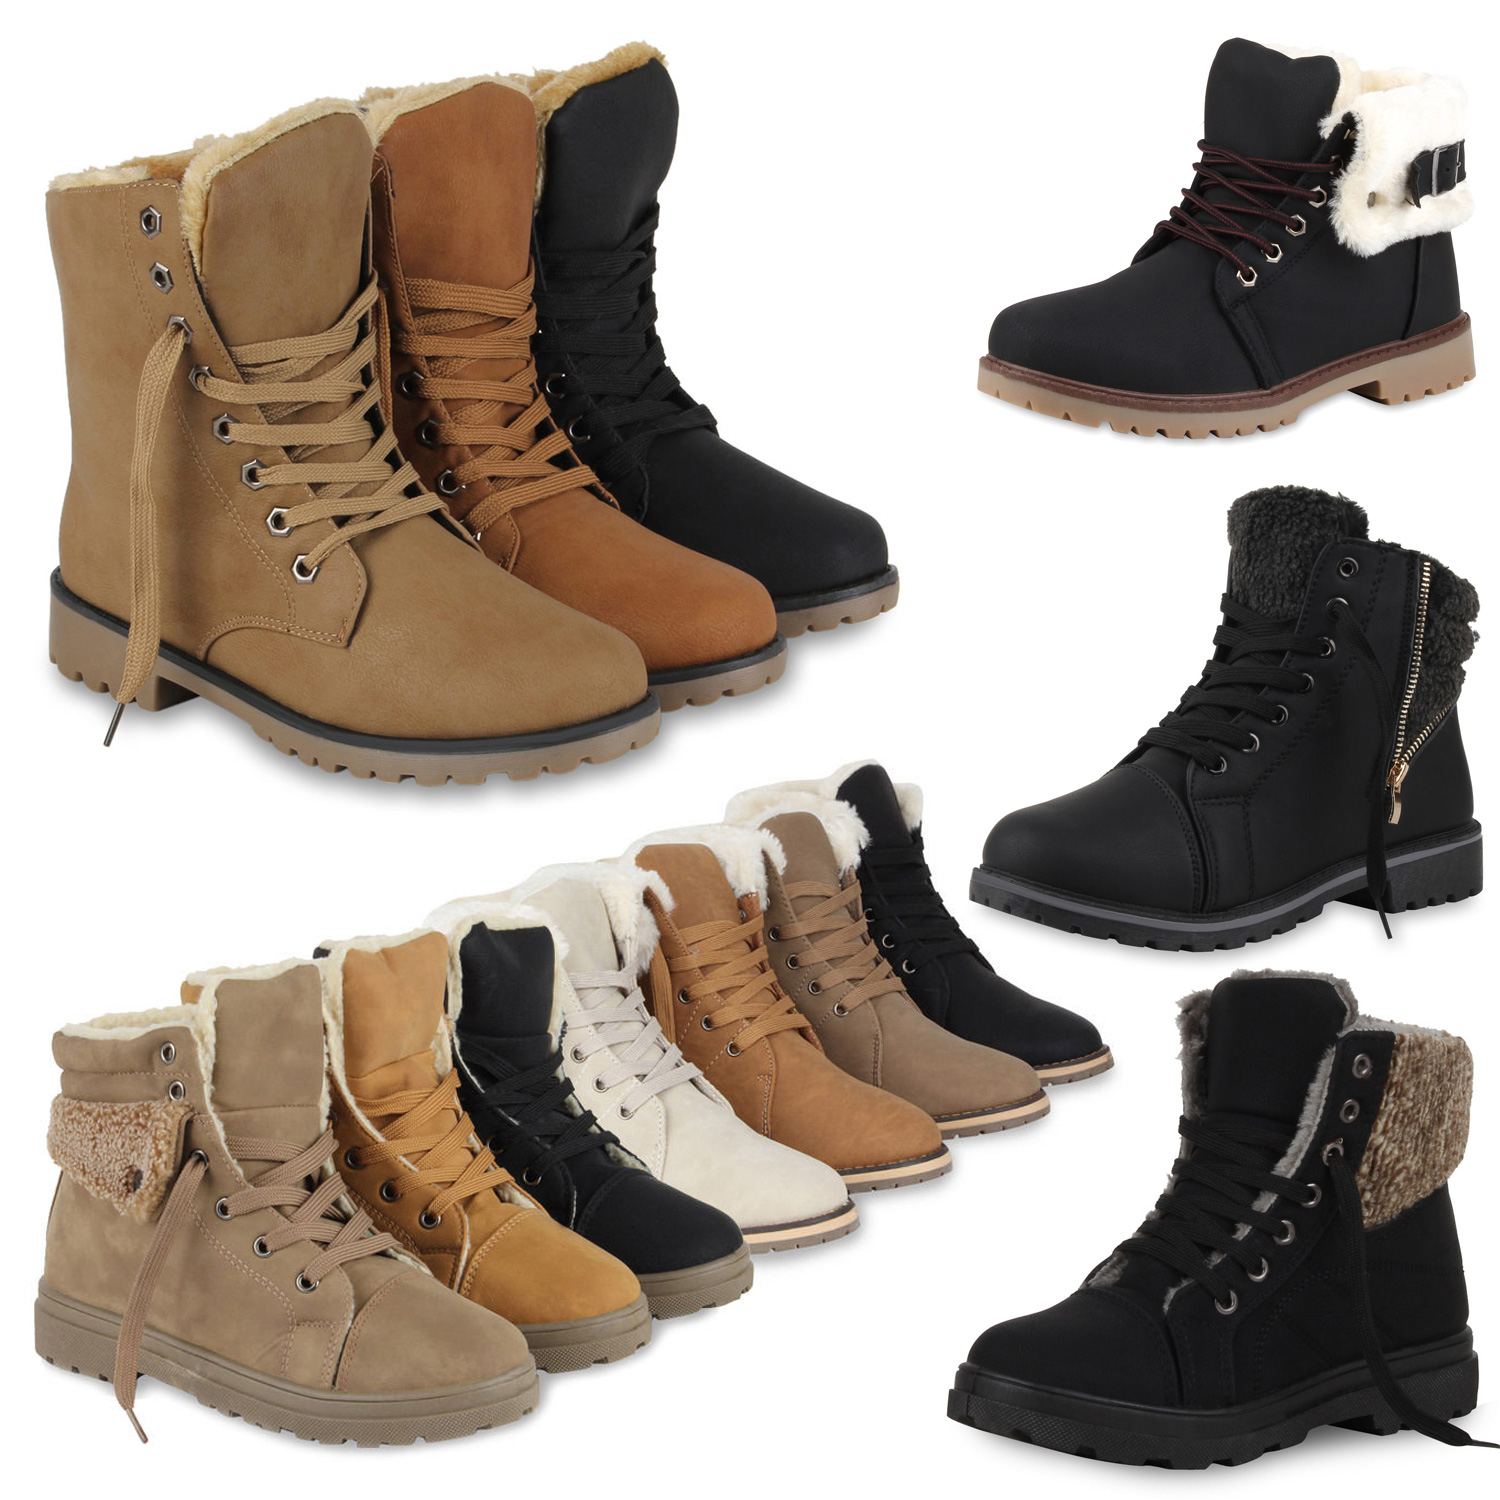 damen winter stiefeletten worker boots gef tterte stiefel 70497 gr 36 41 ebay. Black Bedroom Furniture Sets. Home Design Ideas